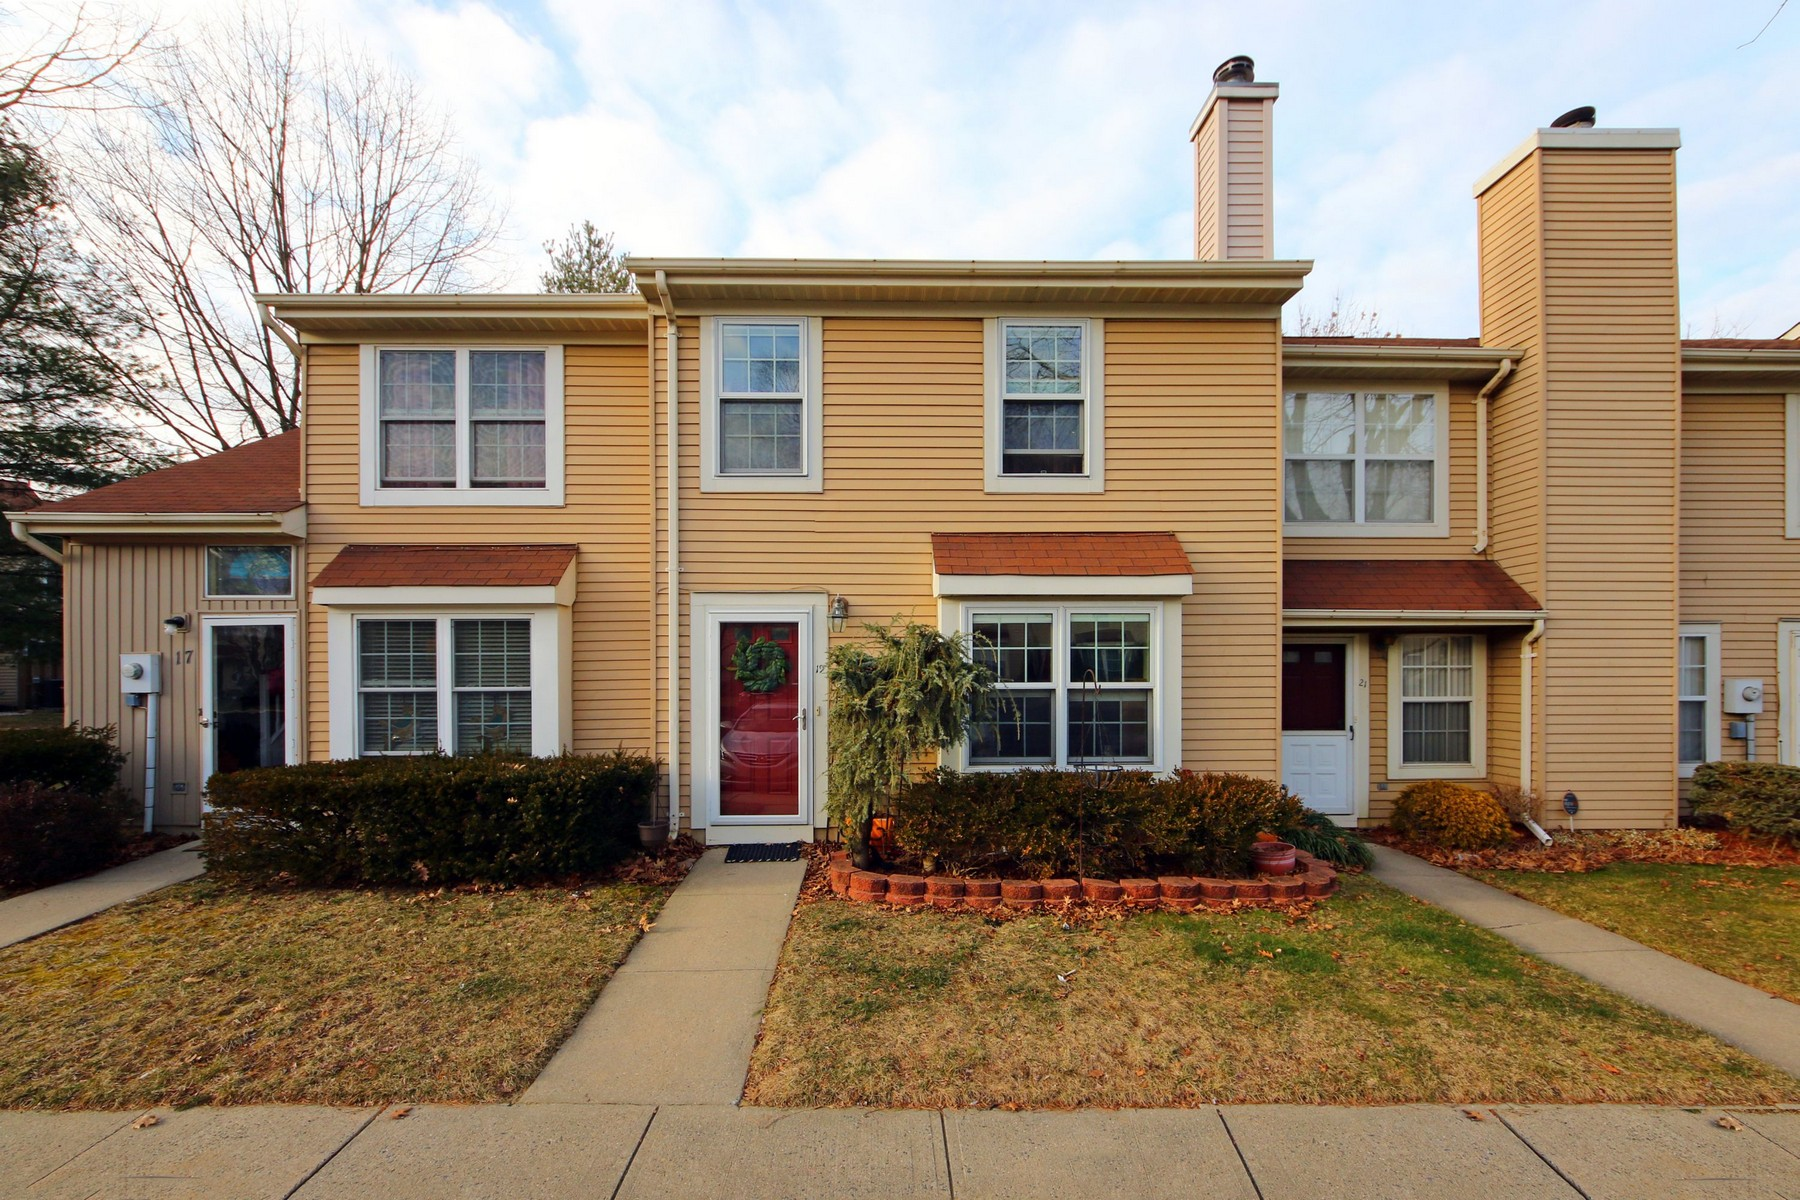 Condominium for Sale at 19 Berkeley Place, Eatontown Eatontown, New Jersey 07724 United States